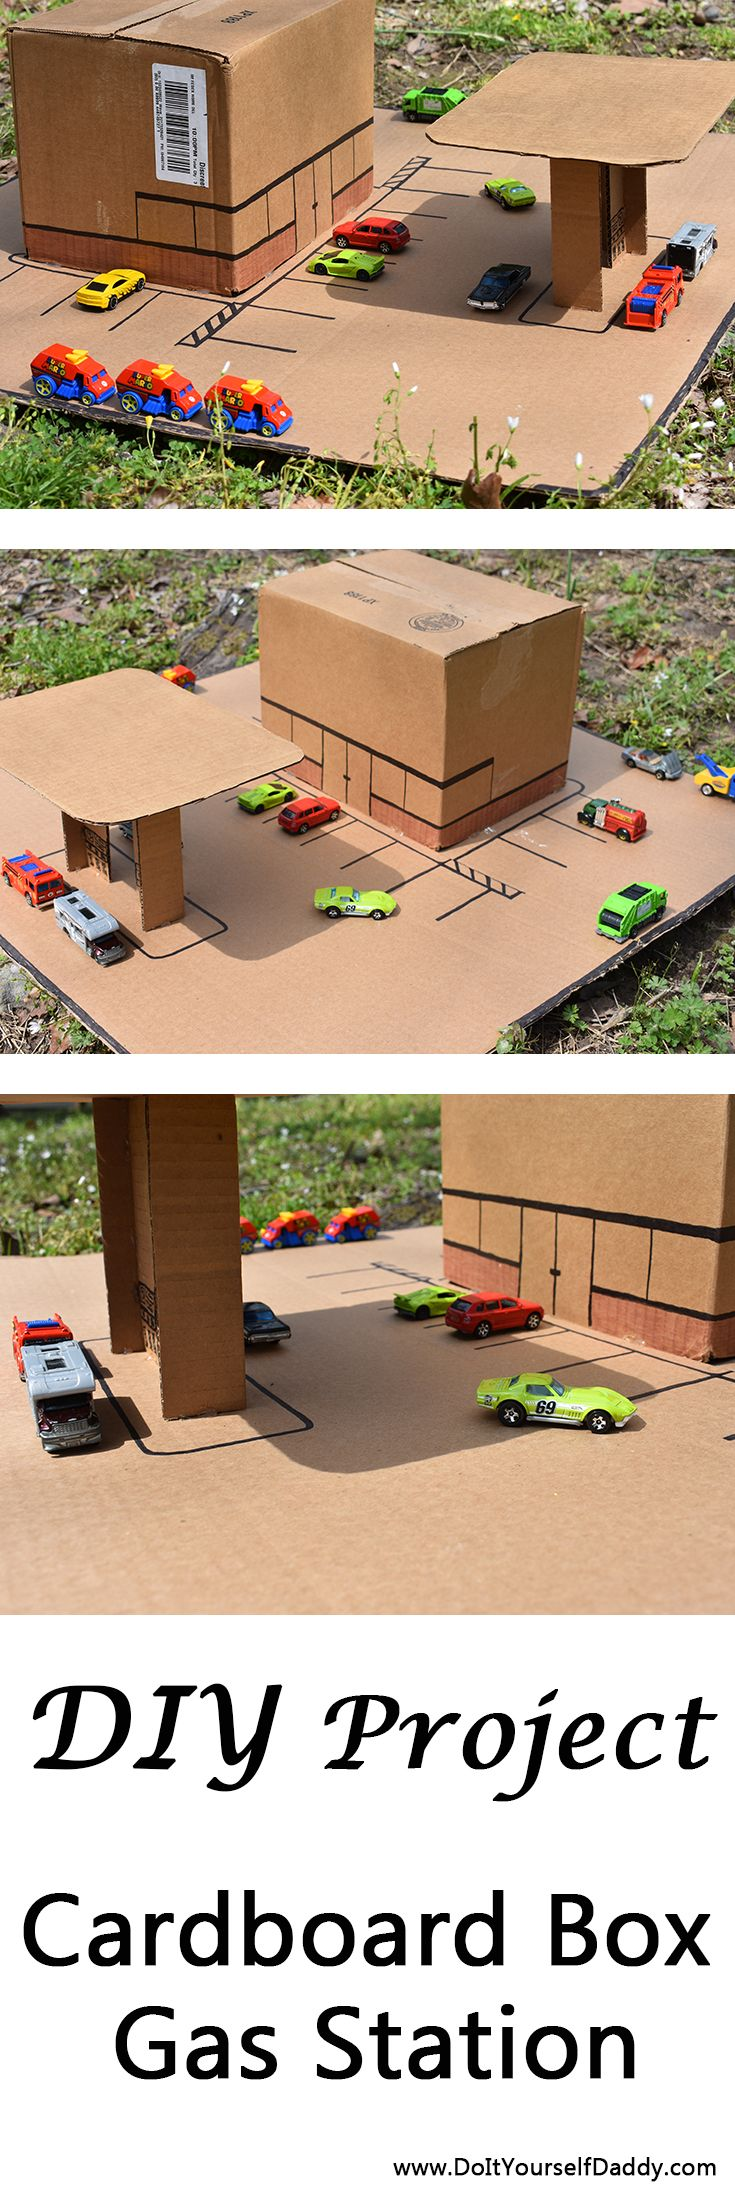 Your kids will love this! Easy to build and lots of fun.  .  .  .  #diy #model #hotwheels #matchbox #playtime #fun #imagination #toys #kids